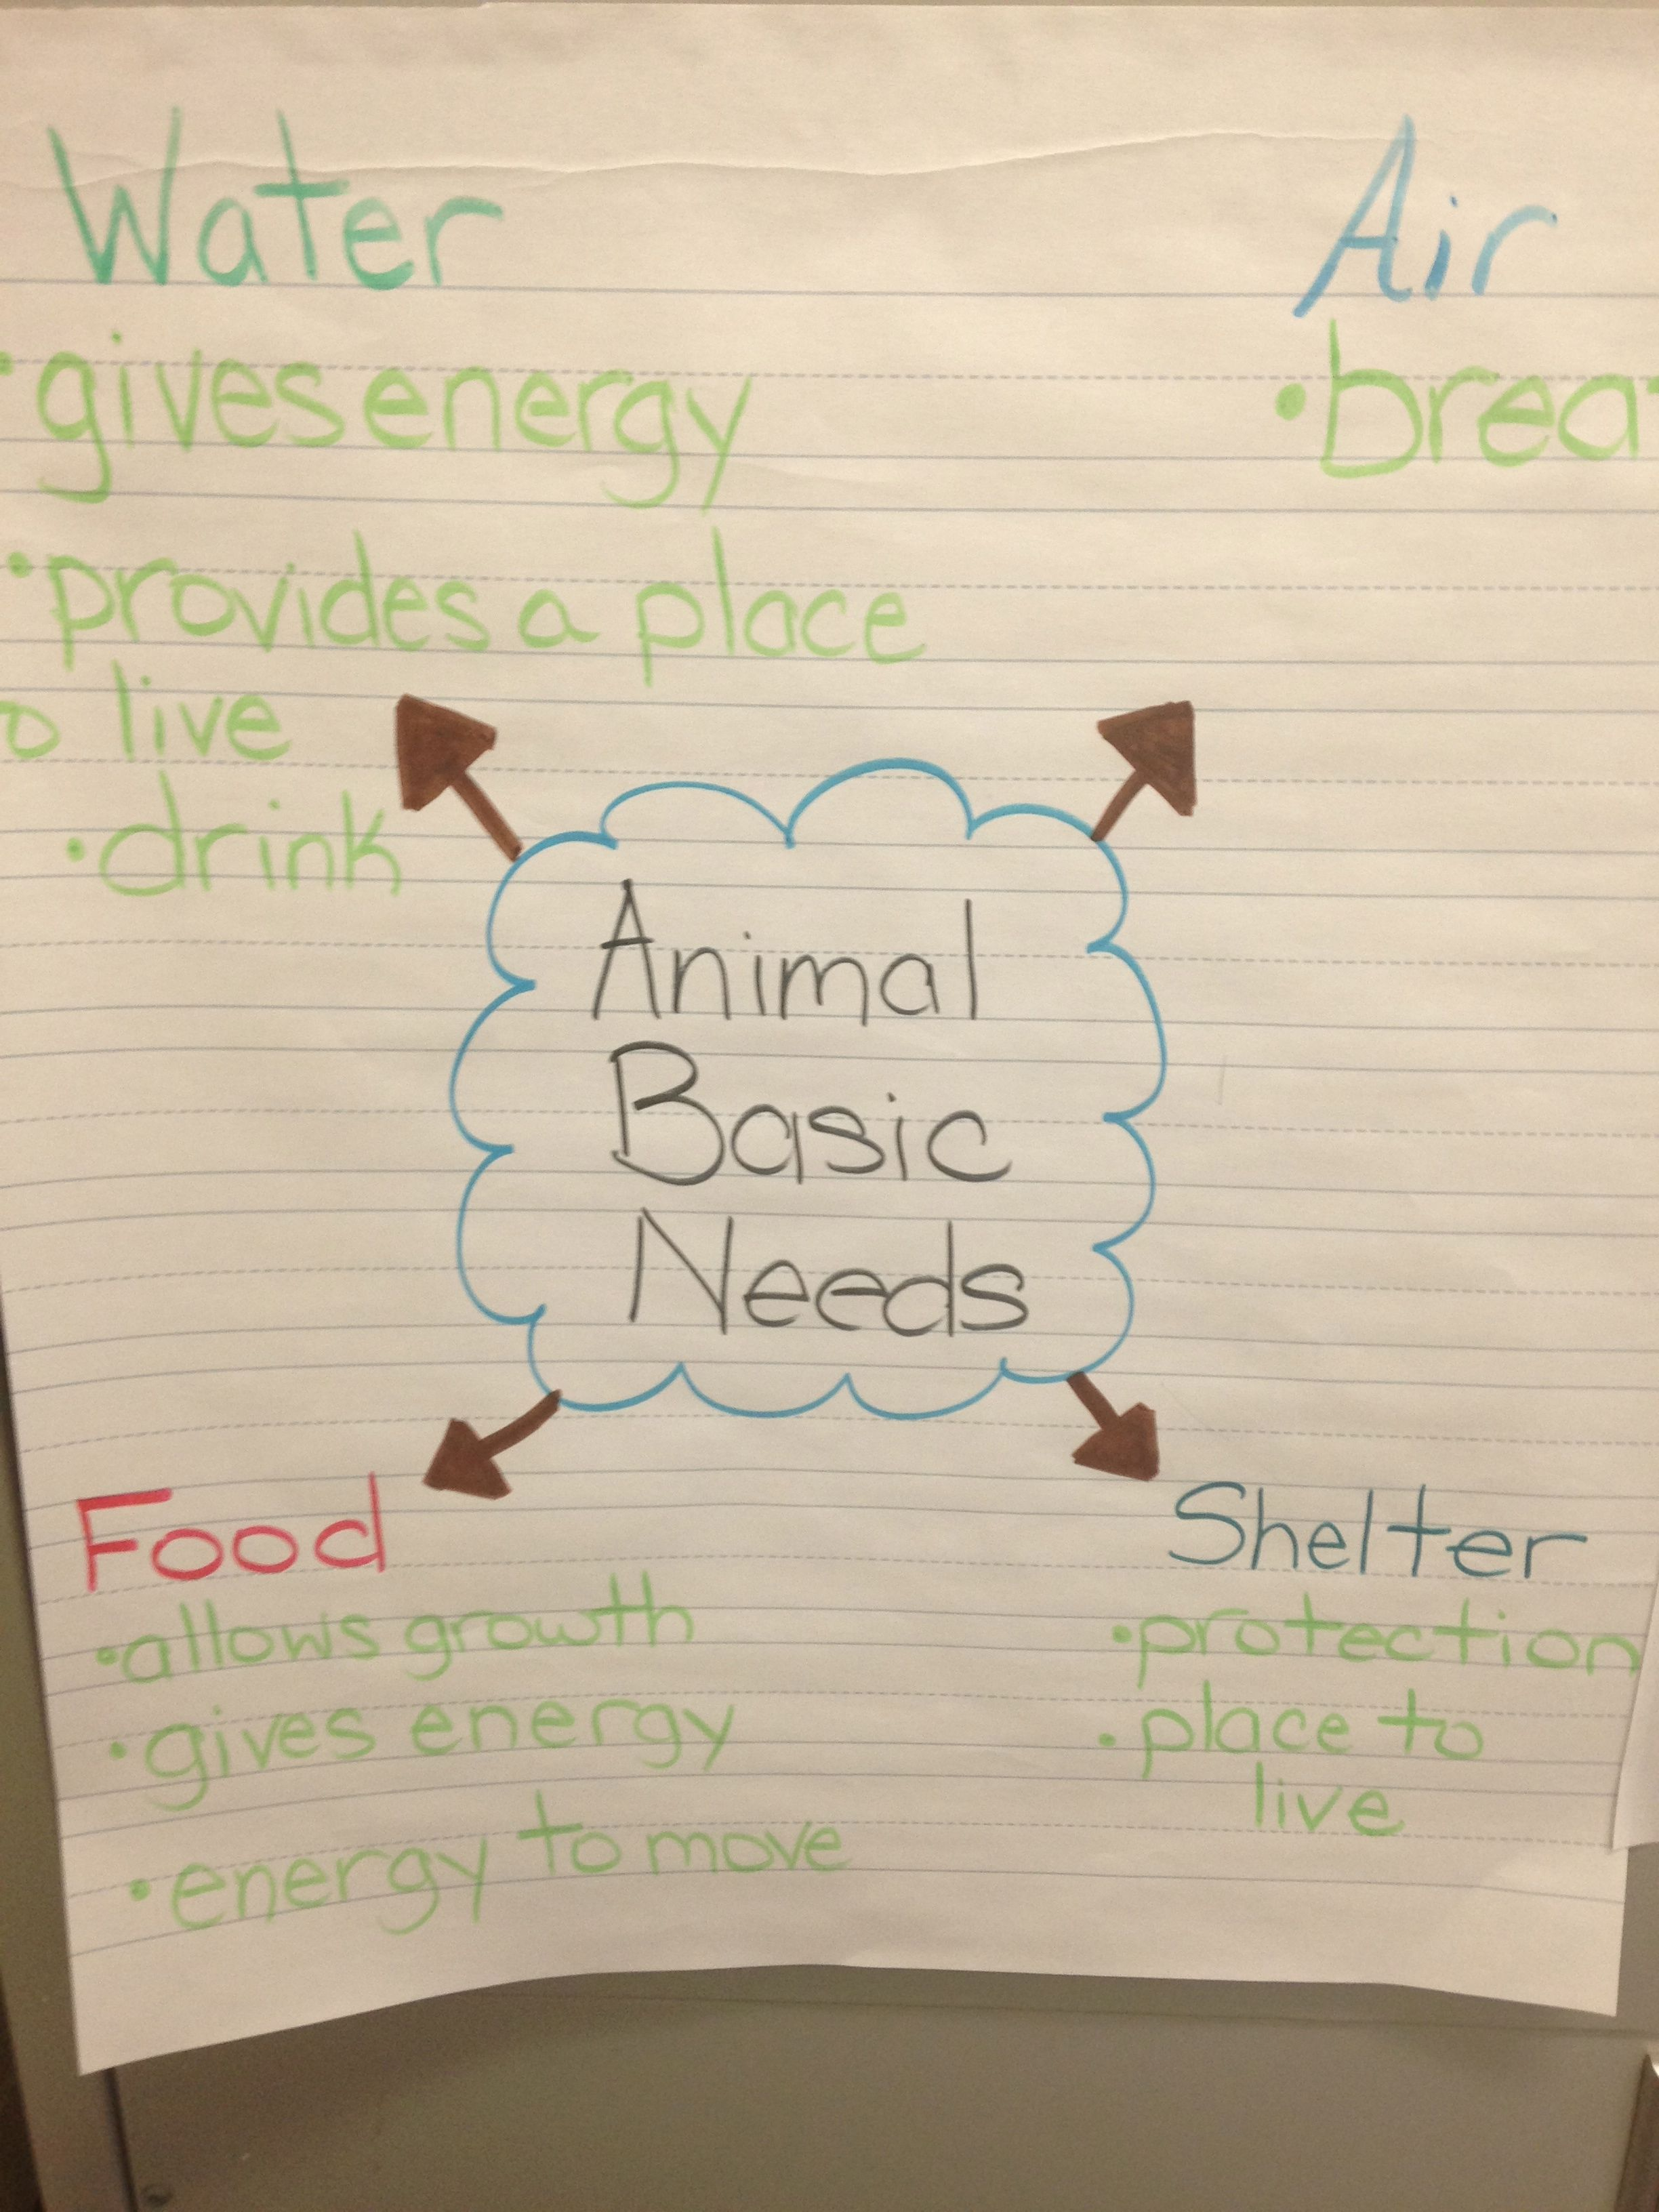 Animal Basic Needs